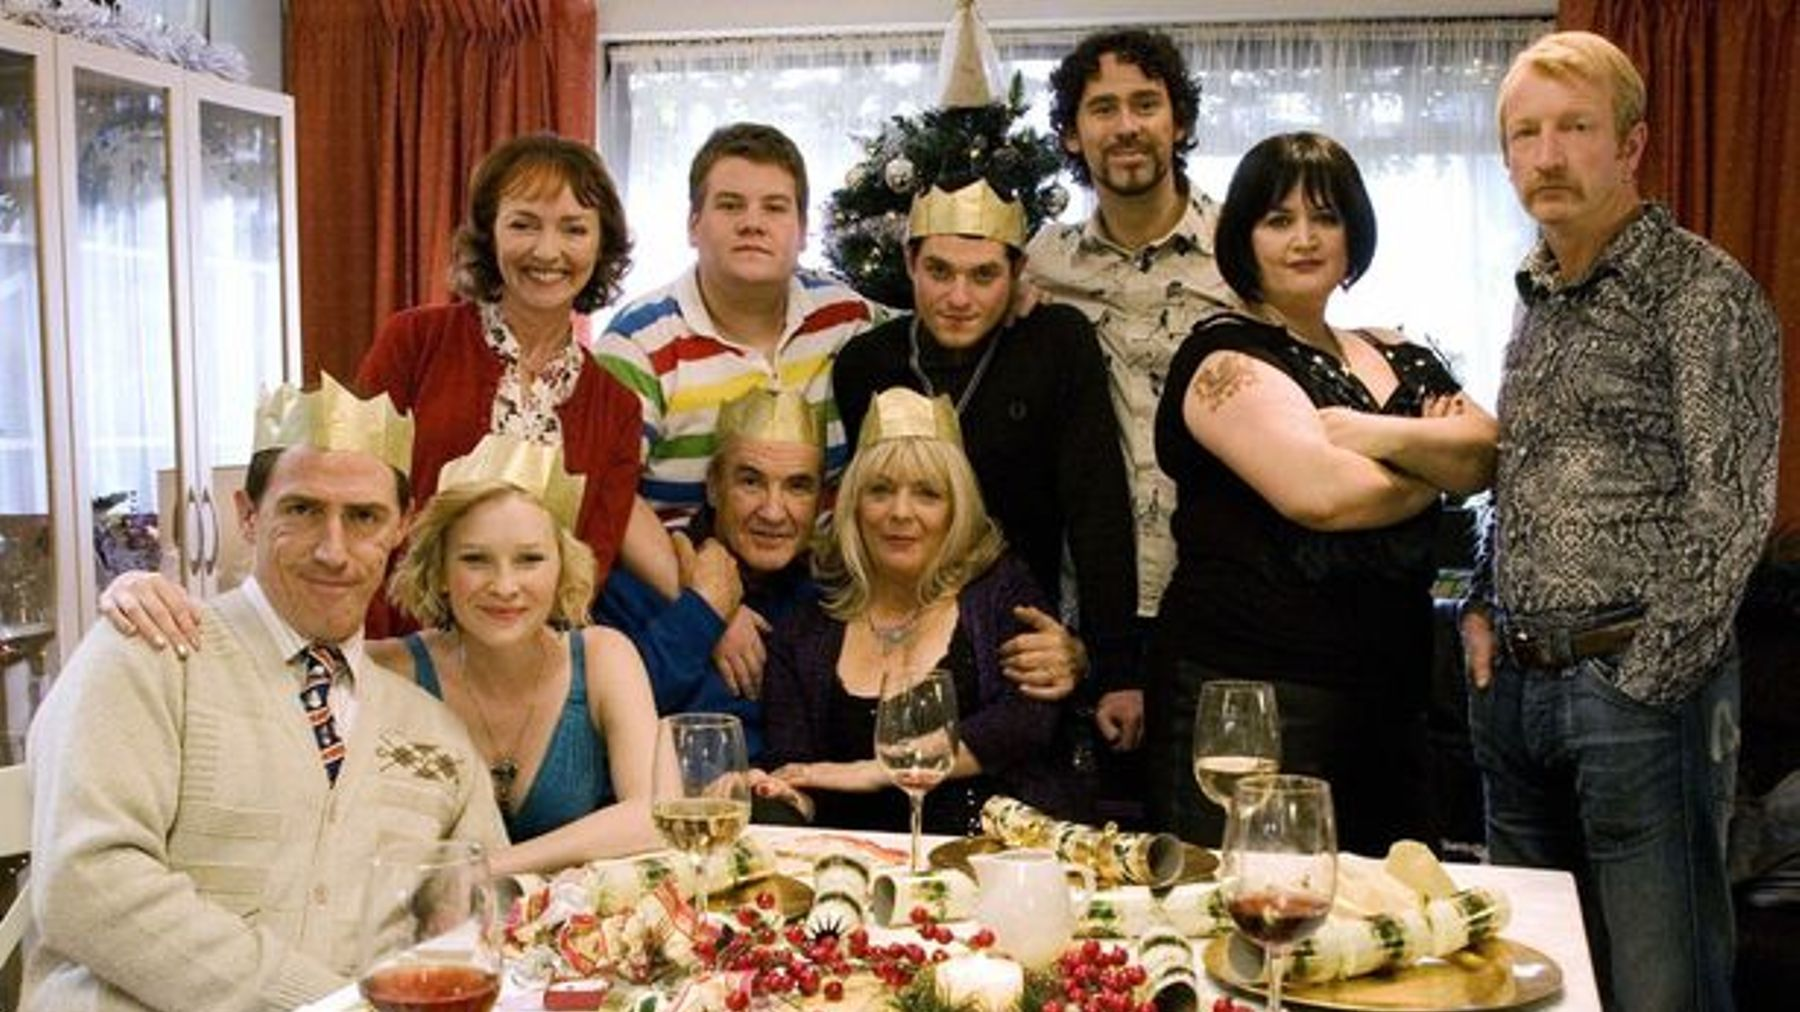 But Why Are We All So Excited For New The Gavin And Stacey